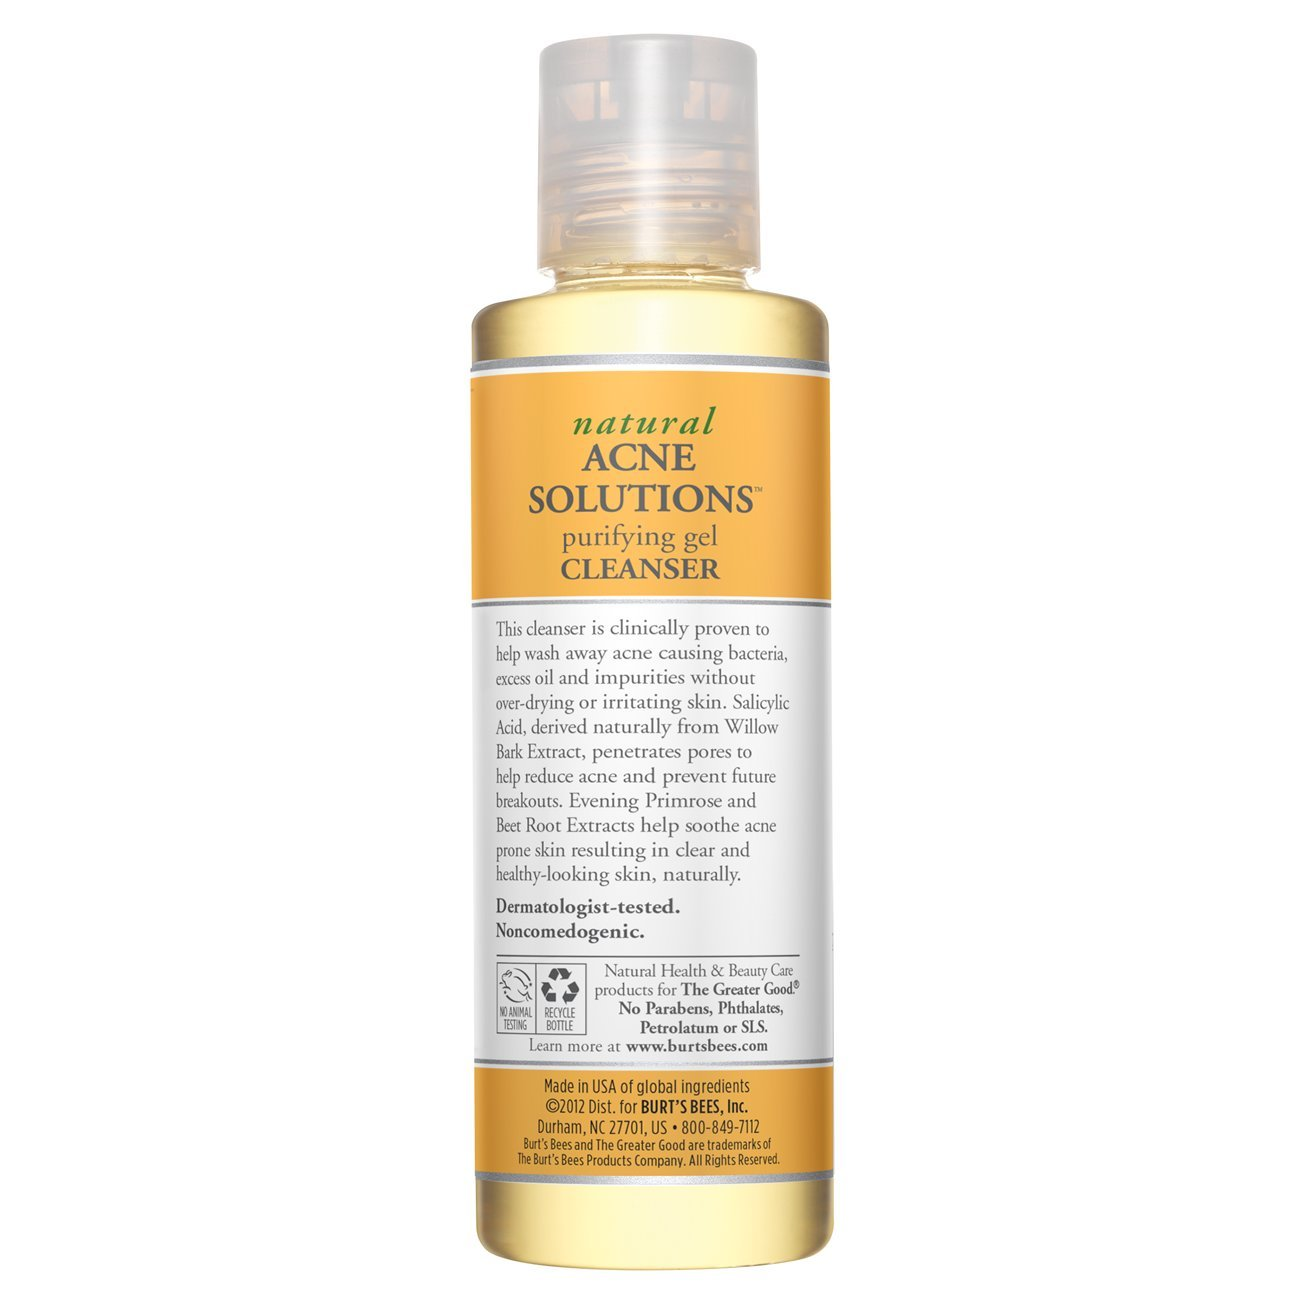 Burts Bees - Natural Acne Solutions Purifying Gel Cleanser - 5 oz. Klorane Floral Water Make-Up Remover With Soothing Cornflower , 13.5 fl. oz. By